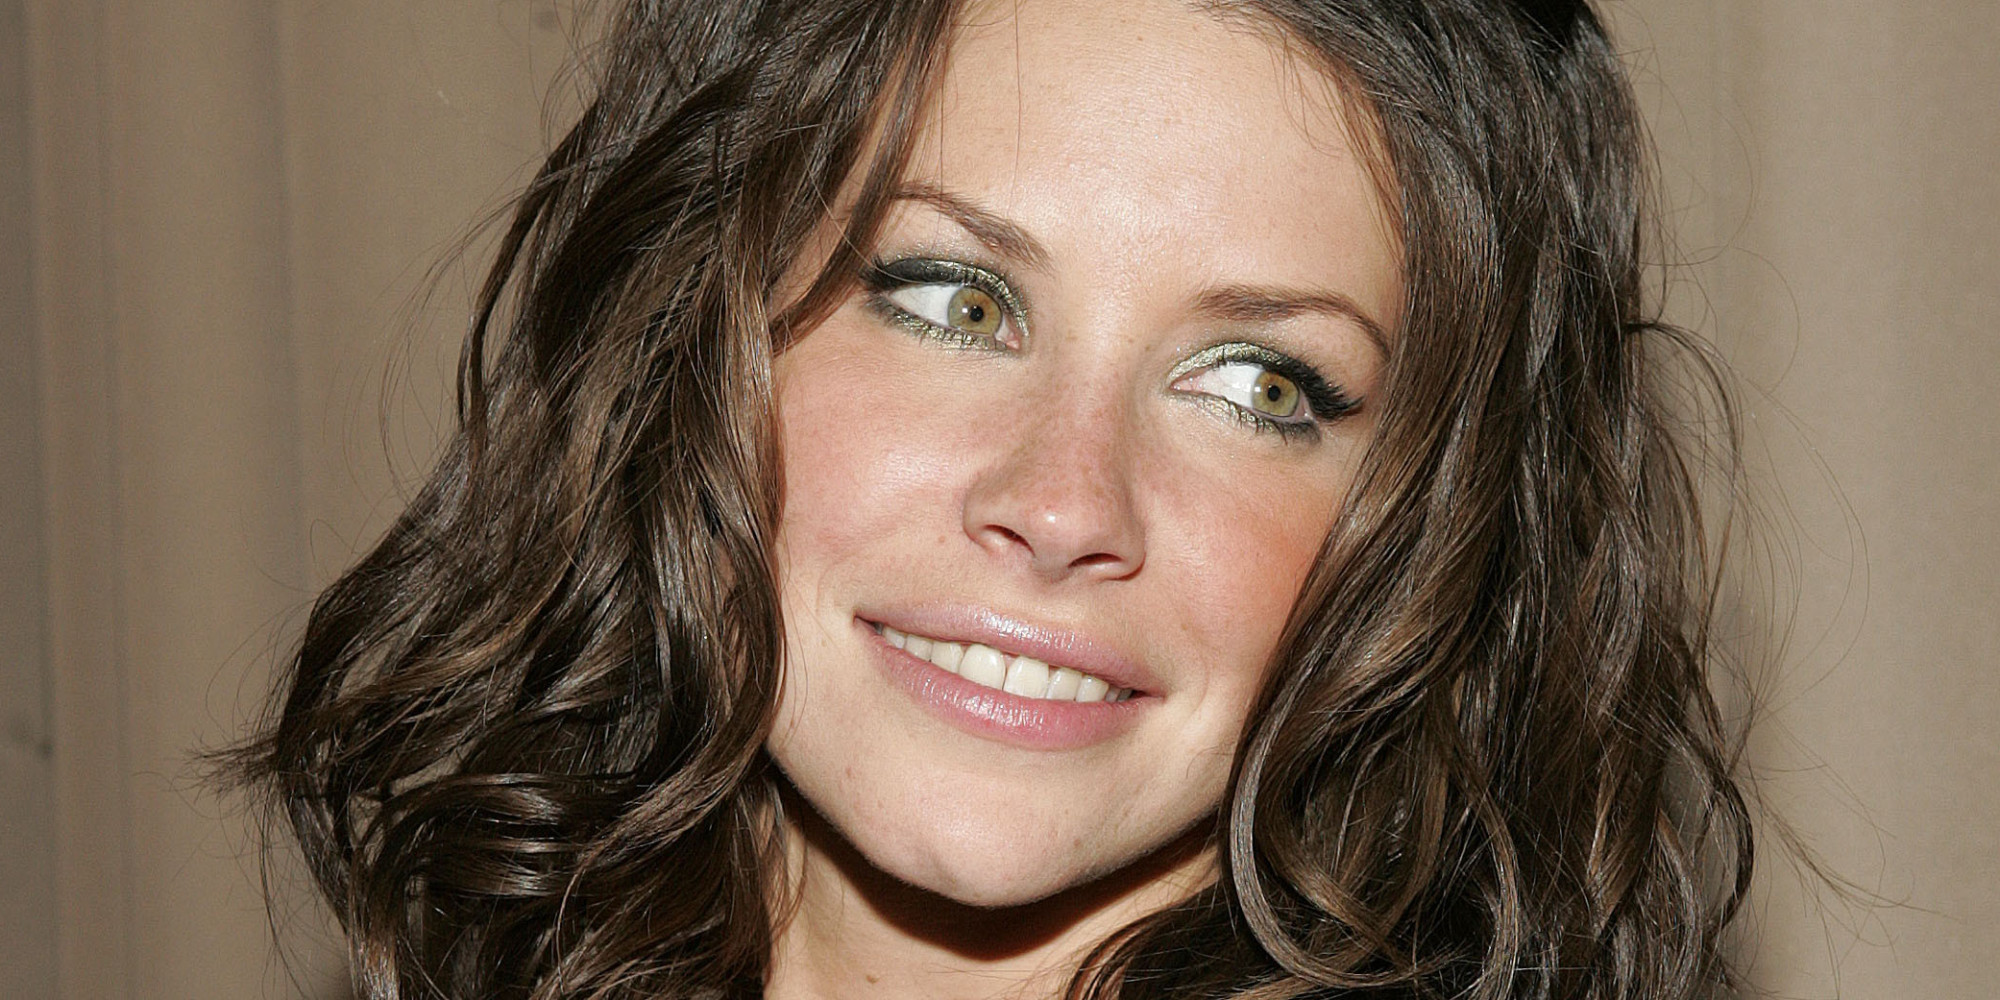 evangeline lilly kinopoiskevangeline lilly 2016, evangeline lilly 2017, evangeline lilly lost, evangeline lilly gif, evangeline lilly photoshoots, evangeline lilly tumblr, evangeline lilly husband, evangeline lilly insta, evangeline lilly young, evangeline lilly net worth, evangeline lilly kate beckinsale, evangeline lilly 2014, evangeline lilly hq, evangeline lilly book, evangeline lilly magazine, evangeline lilly gallery, evangeline lilly kinopoisk, evangeline lilly lee pace, evangeline lilly official, evangeline lilly l'oreal